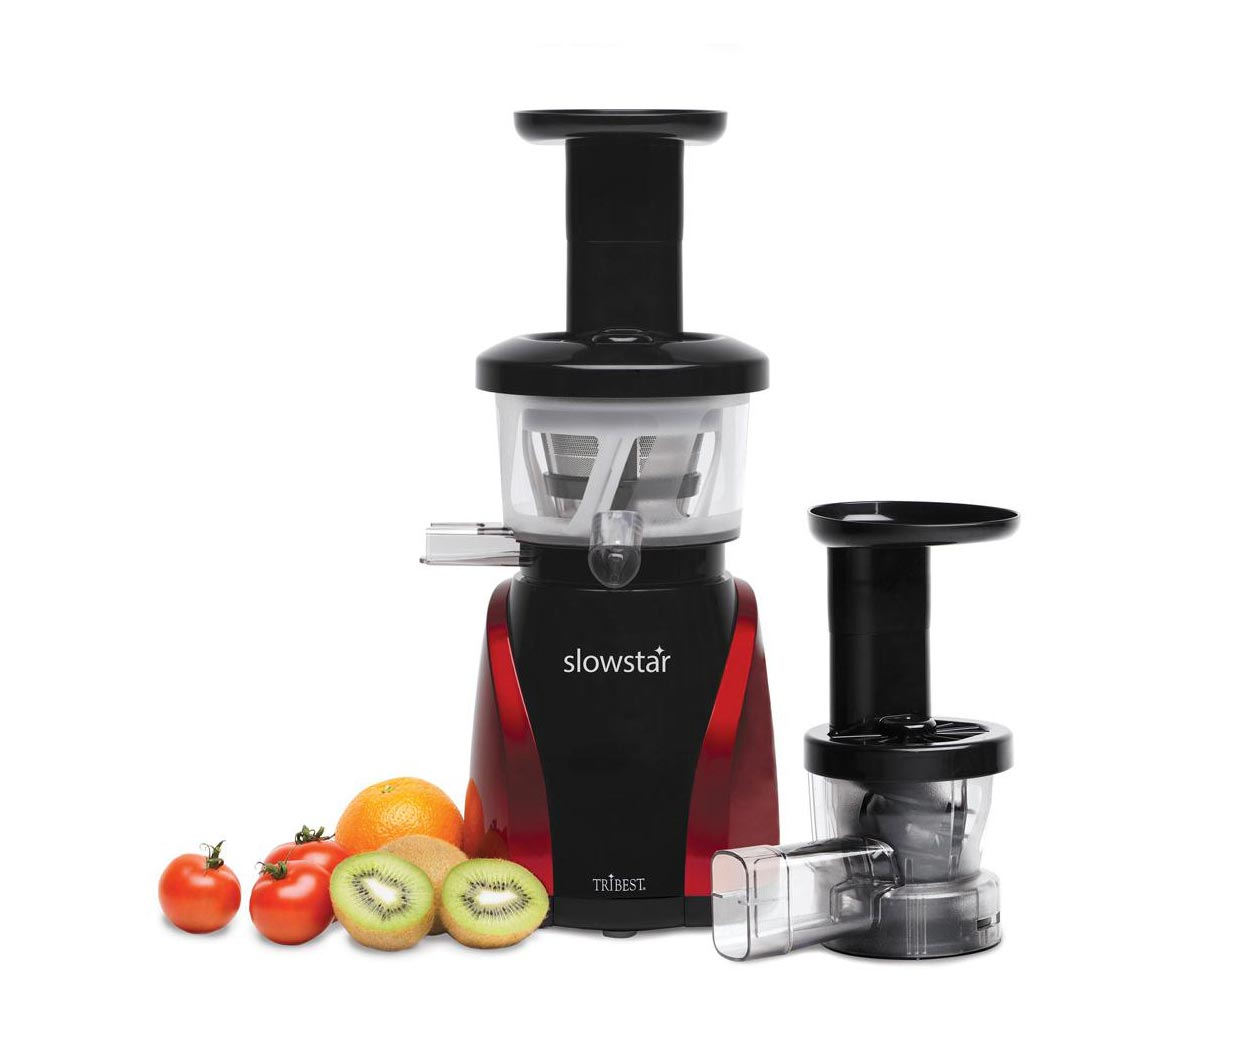 Slowstar Juicer : Tribest Slowstar Juicer Review. Is this Tribest juicer the best juicer to buy?